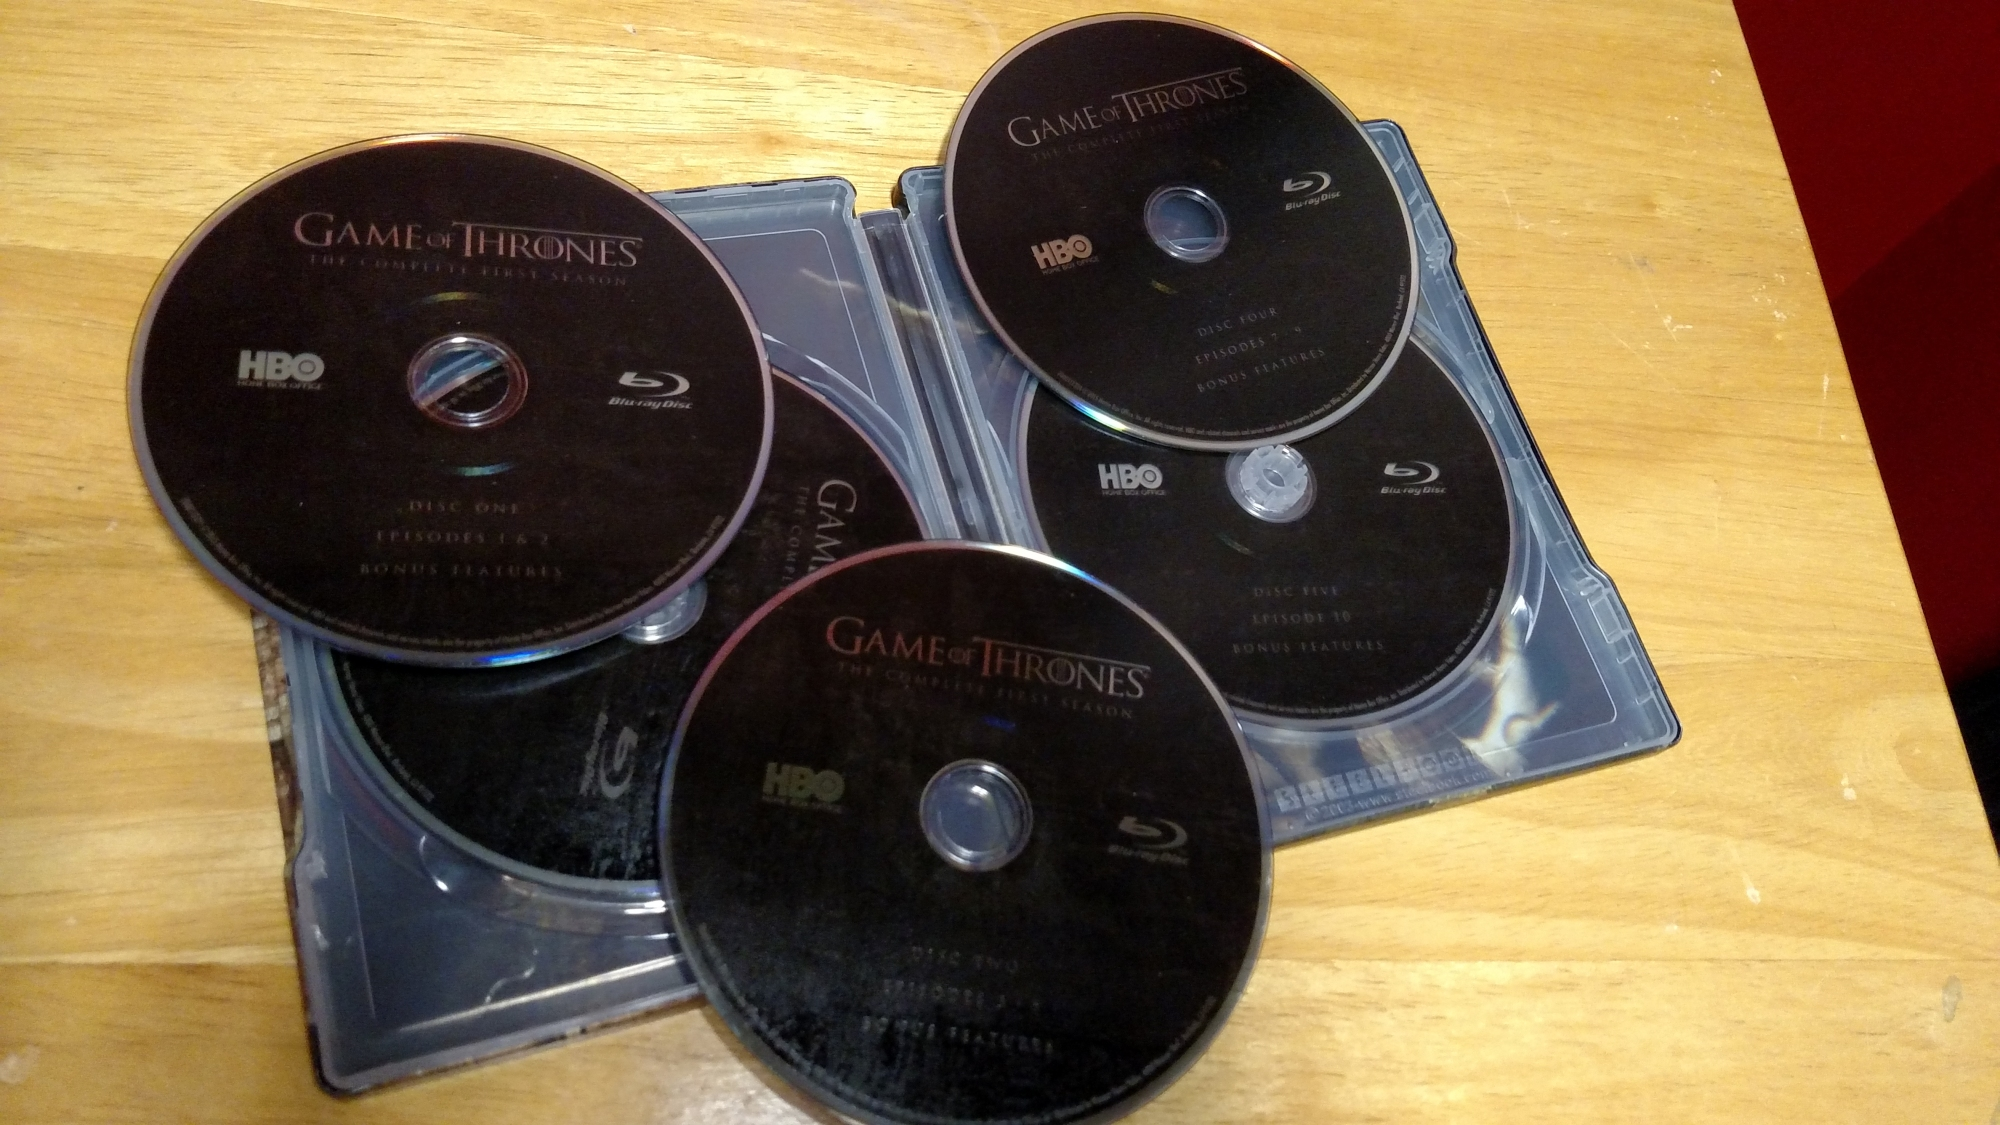 Game of Thrones SteelBook Inside - Discs Displayed